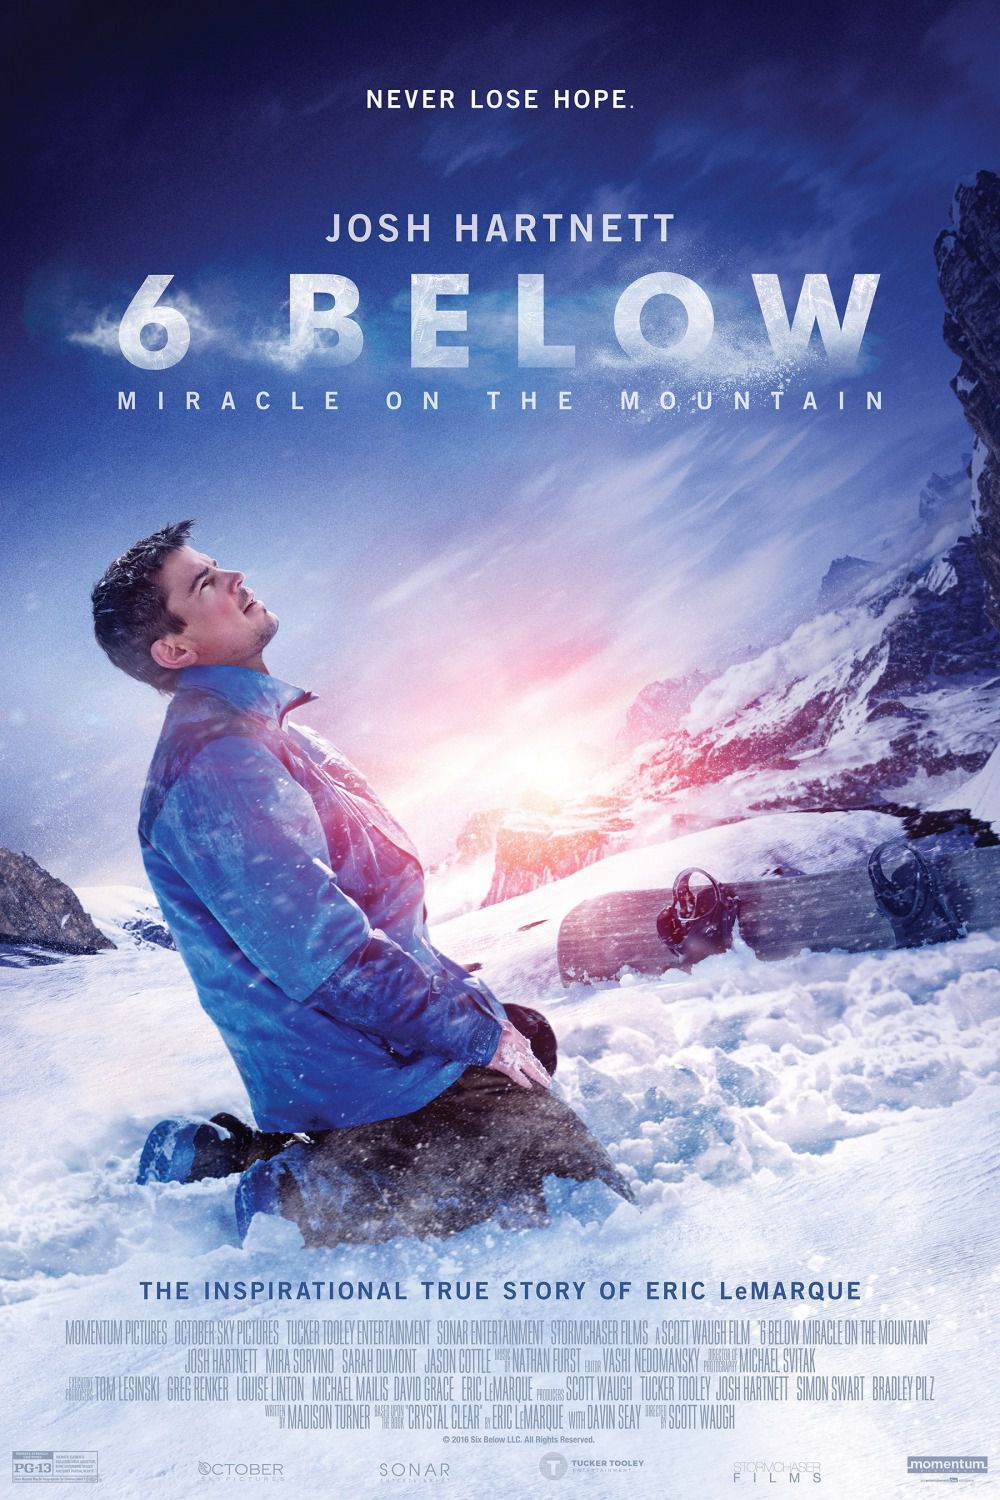 6 Below - Six Below - Josh Hartnett - poster - Miracle on the Mountain - Never lose Hope